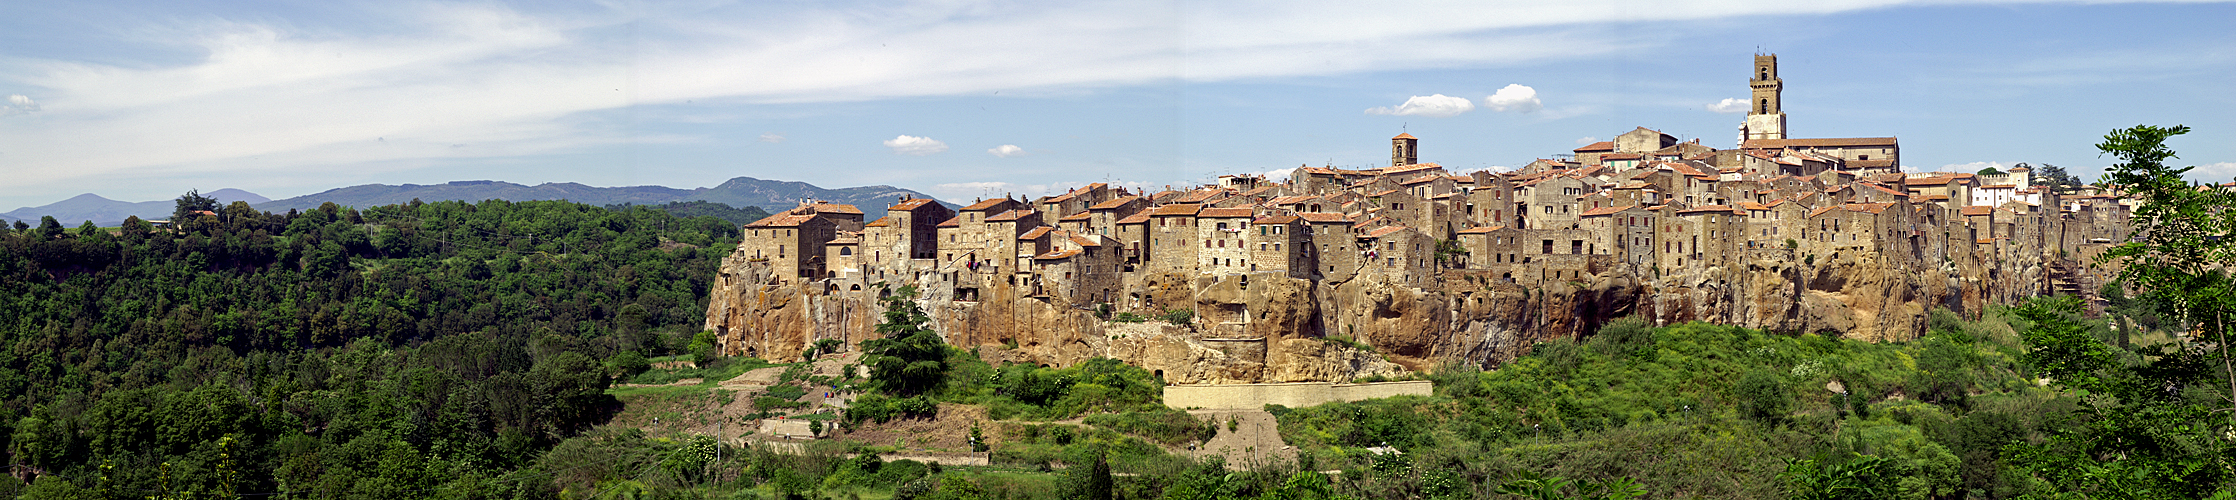 Photo panoramique de Pitigliano